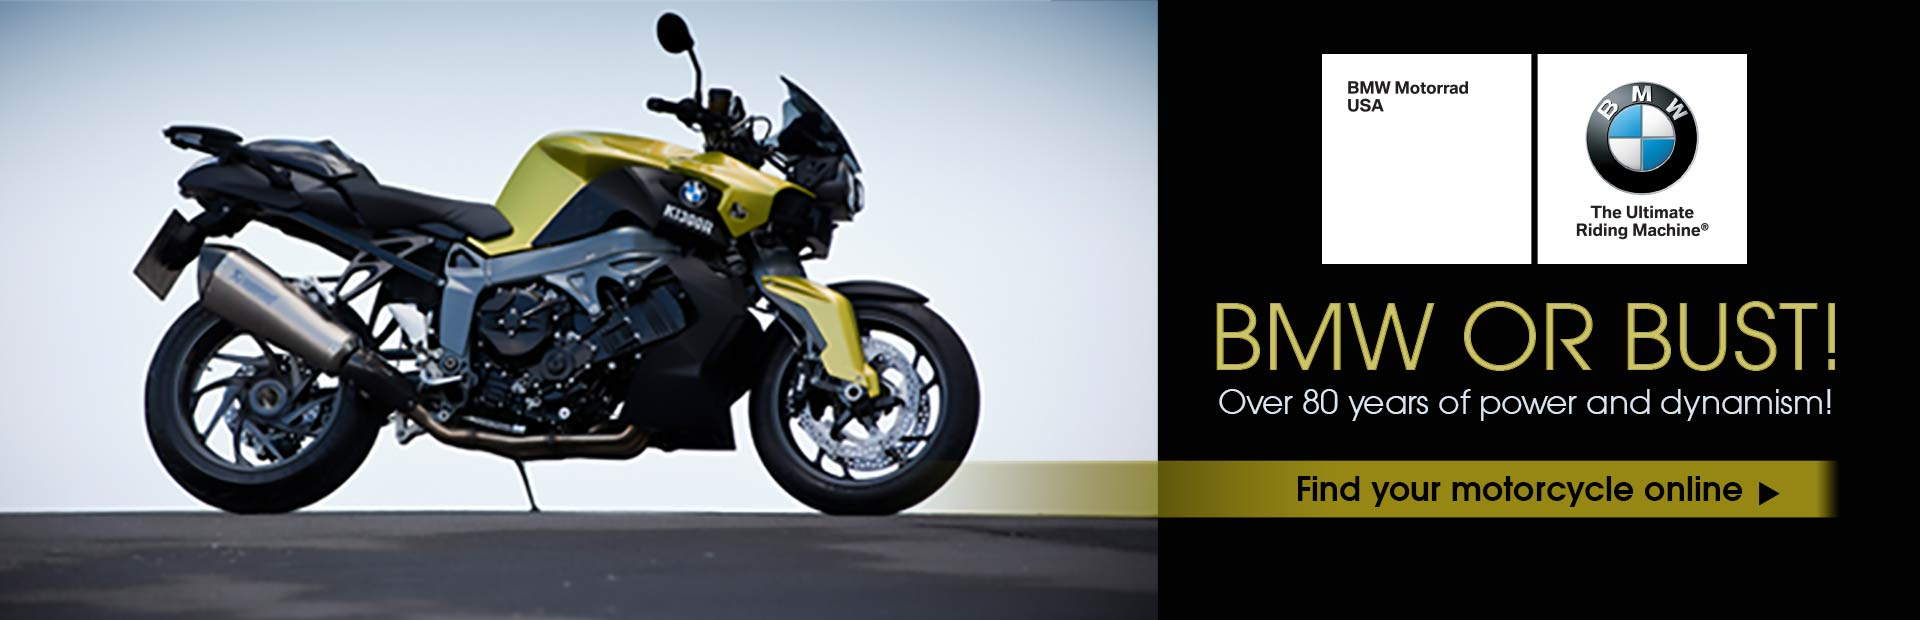 Bmw Motorcycles Of Iowa City Ia 319 338 1404 The Top Line Bikes Over 80 Years Power And Dynamism Click Here To Find Your Motorcycle